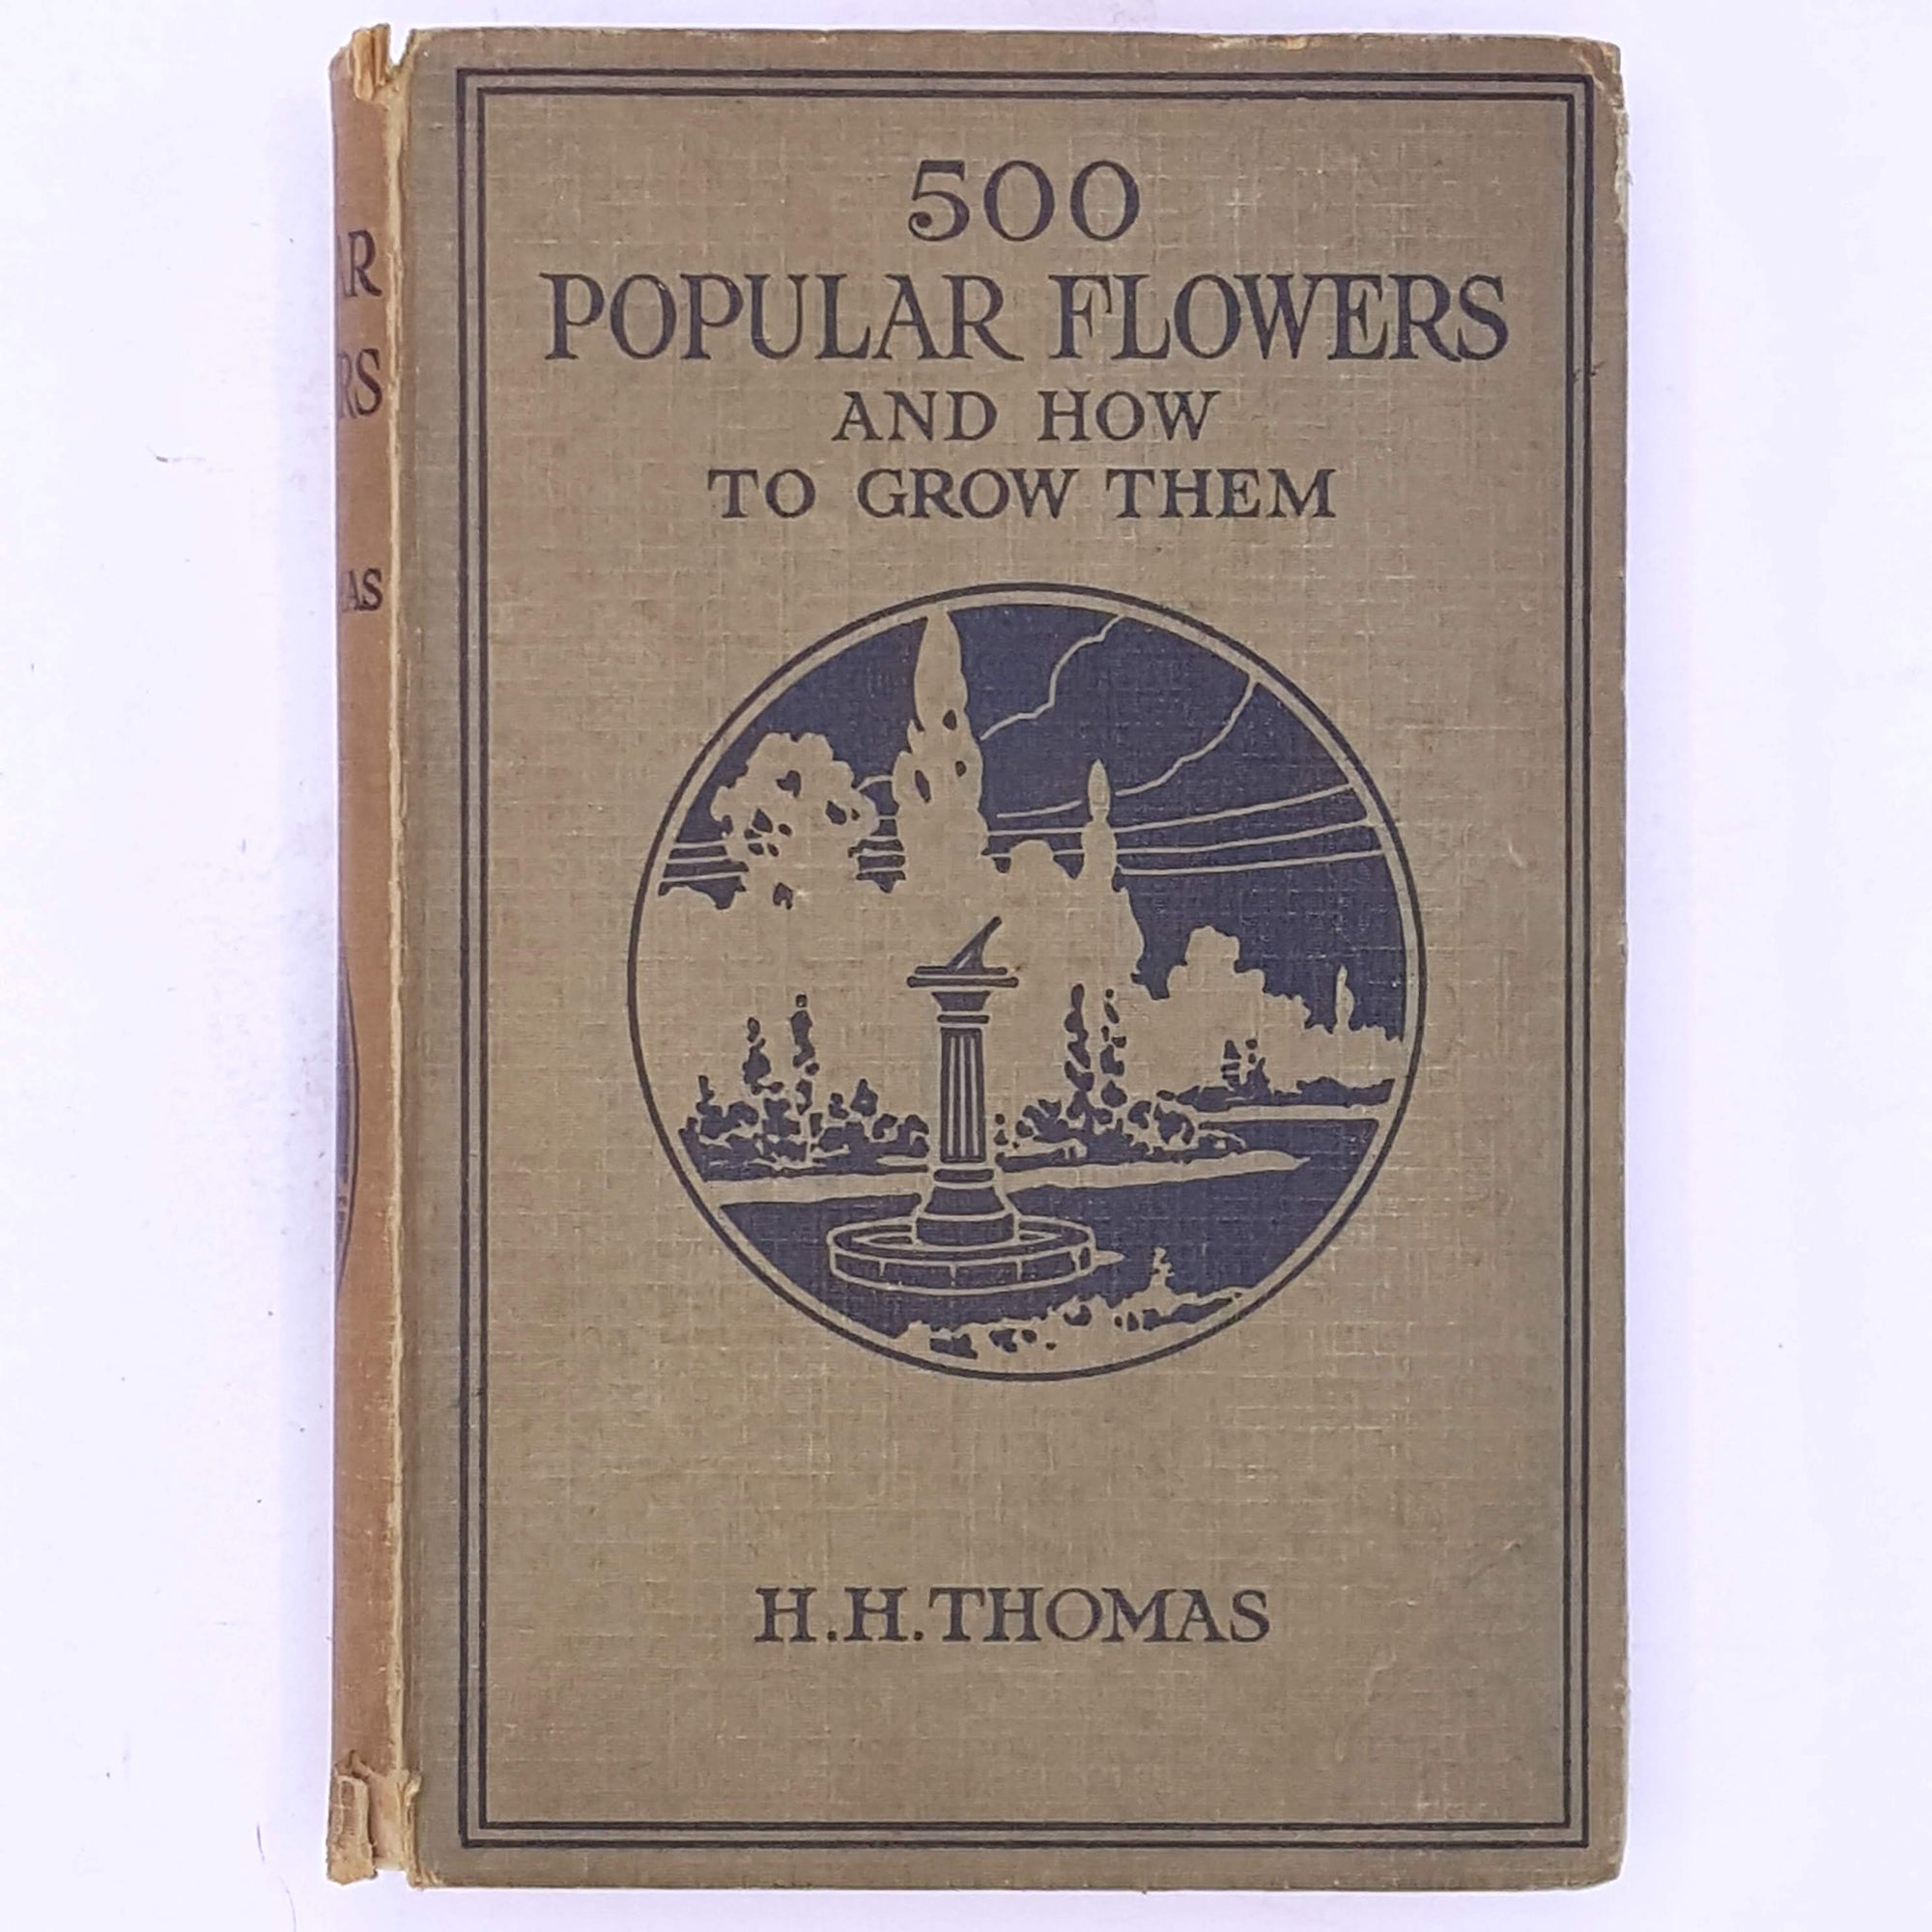 antique-flowers-books-classic-decorative-gardening-illustrated-gardening- thrift-500-Popular-Flowers-and-How-To-Grow-Them-H.H.-Thomas-old-patterned-vegetables-vintage-garden-country-house-library-